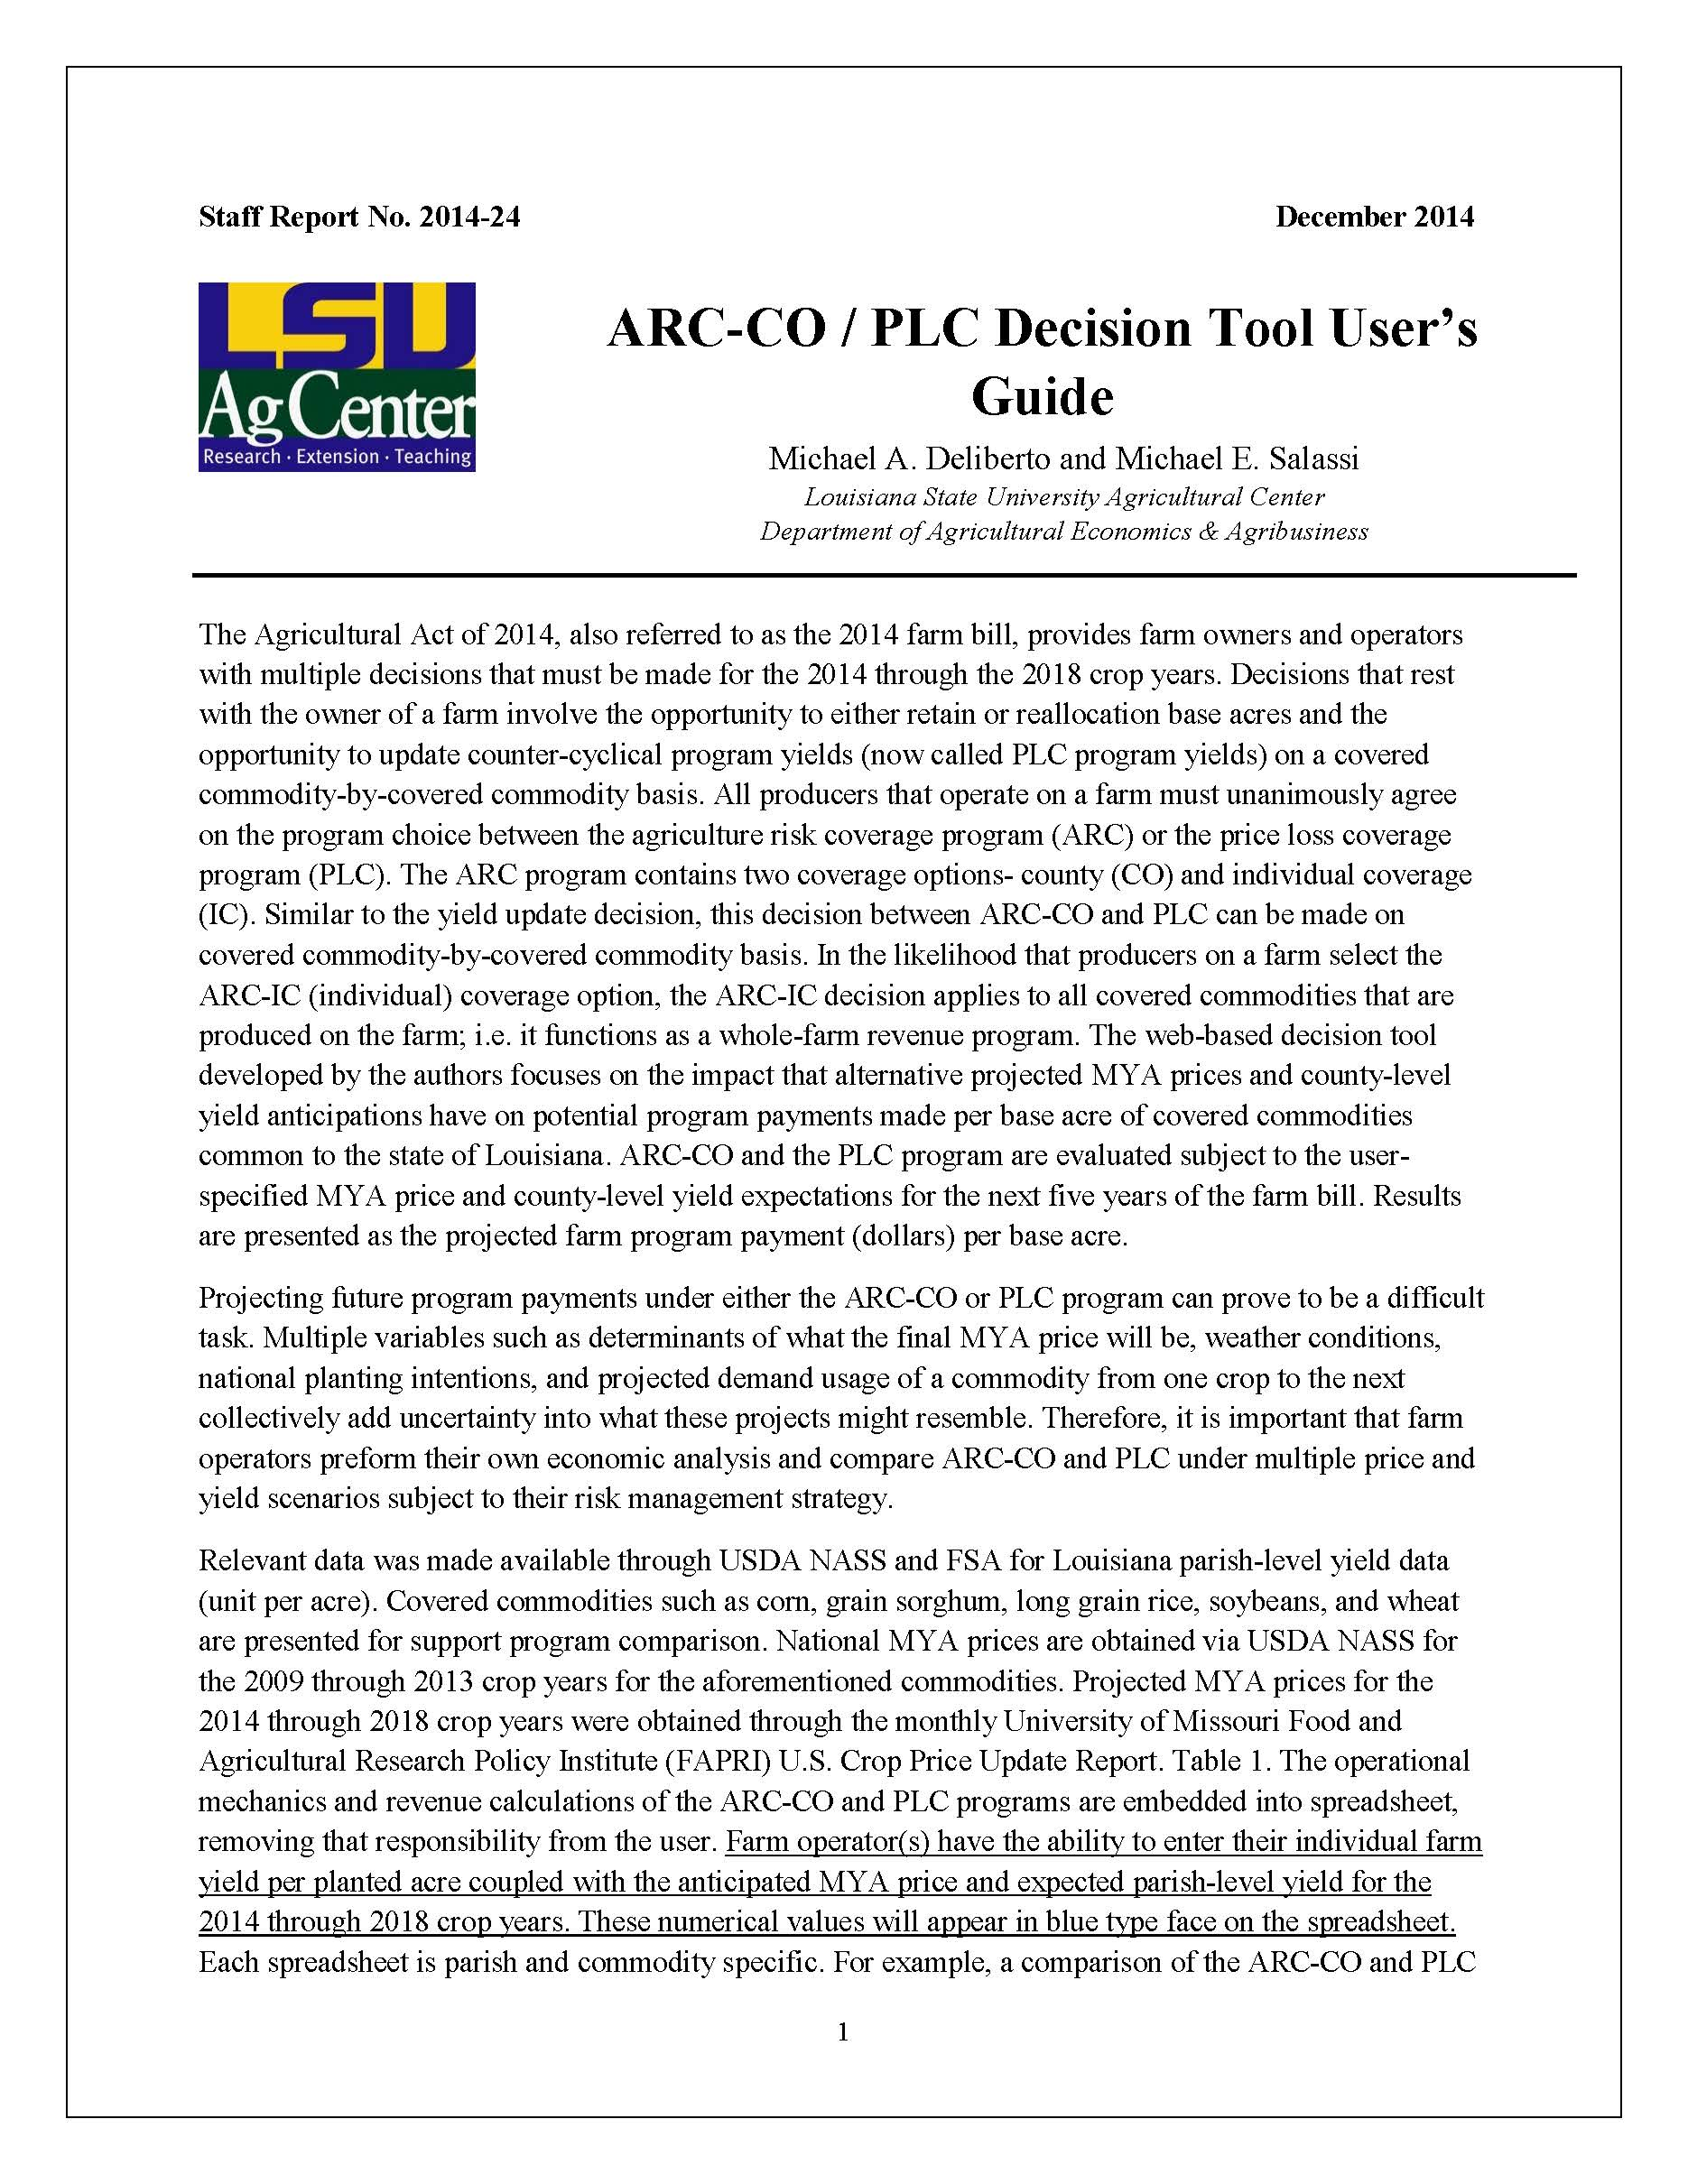 ARC-CO / PLC Decision Tool Users Guide